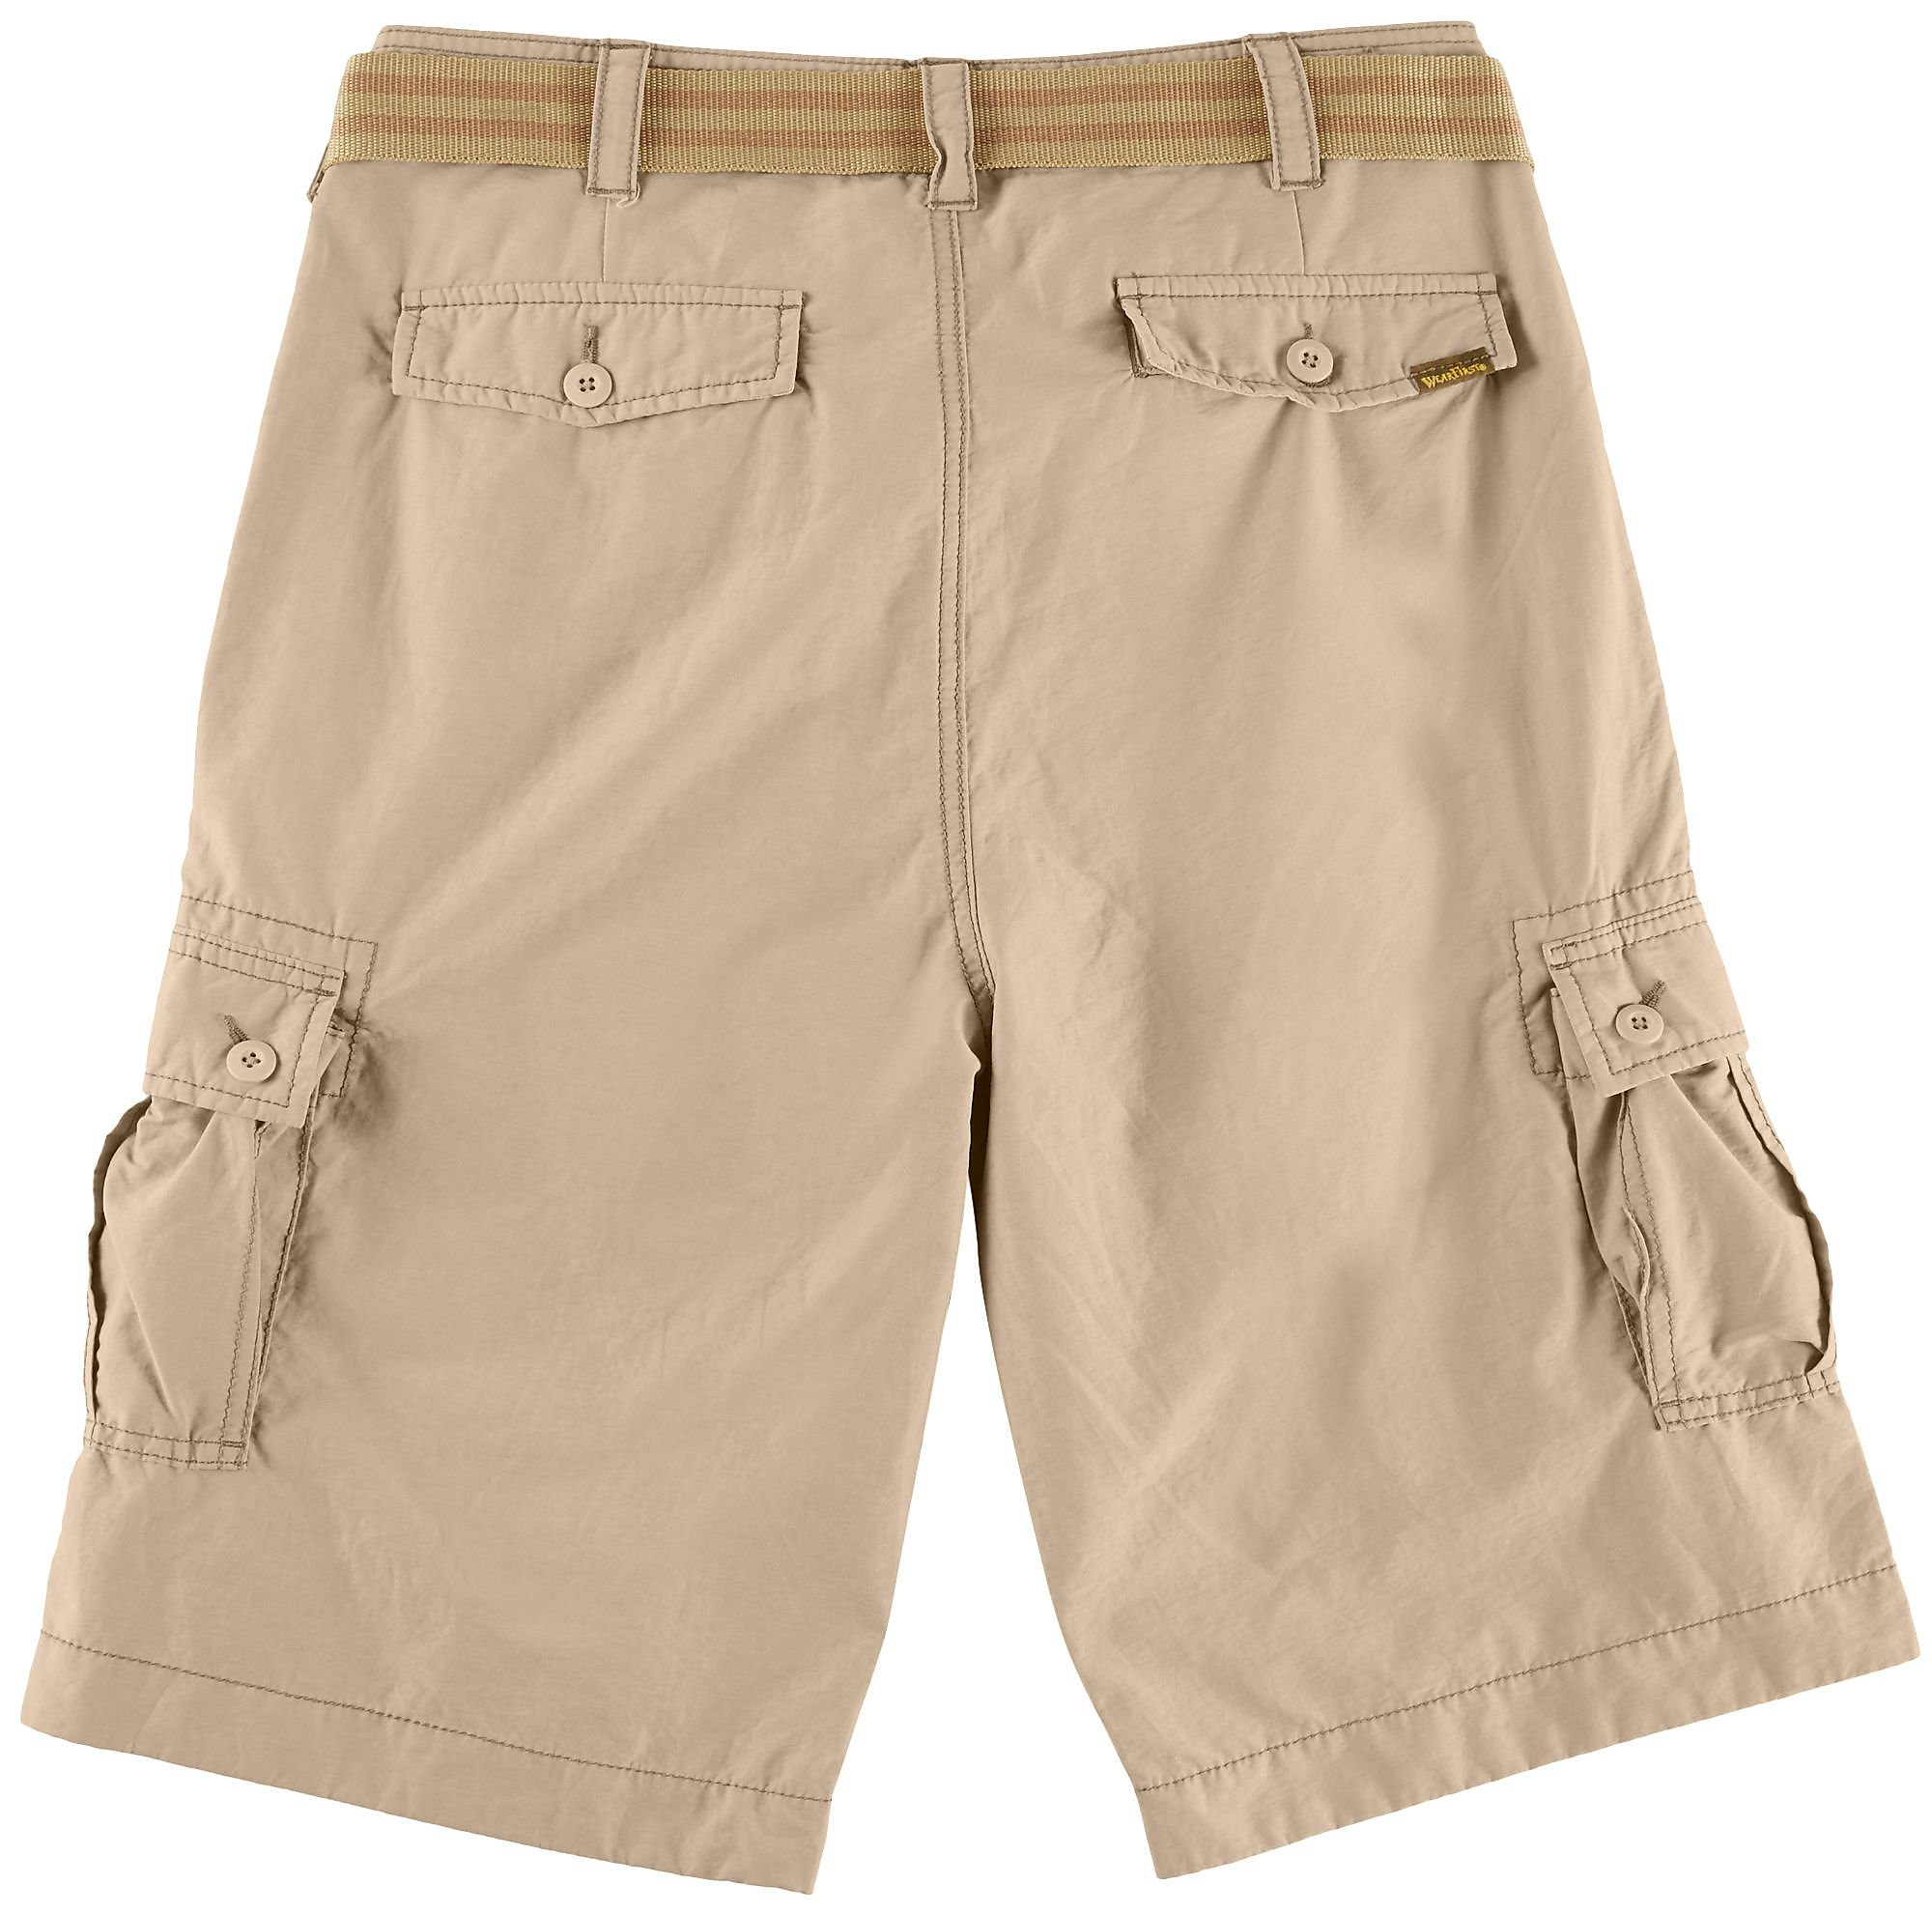 fe45f563ef Wearfirst-Mens-Solid-Cargo-Shorts thumbnail 8